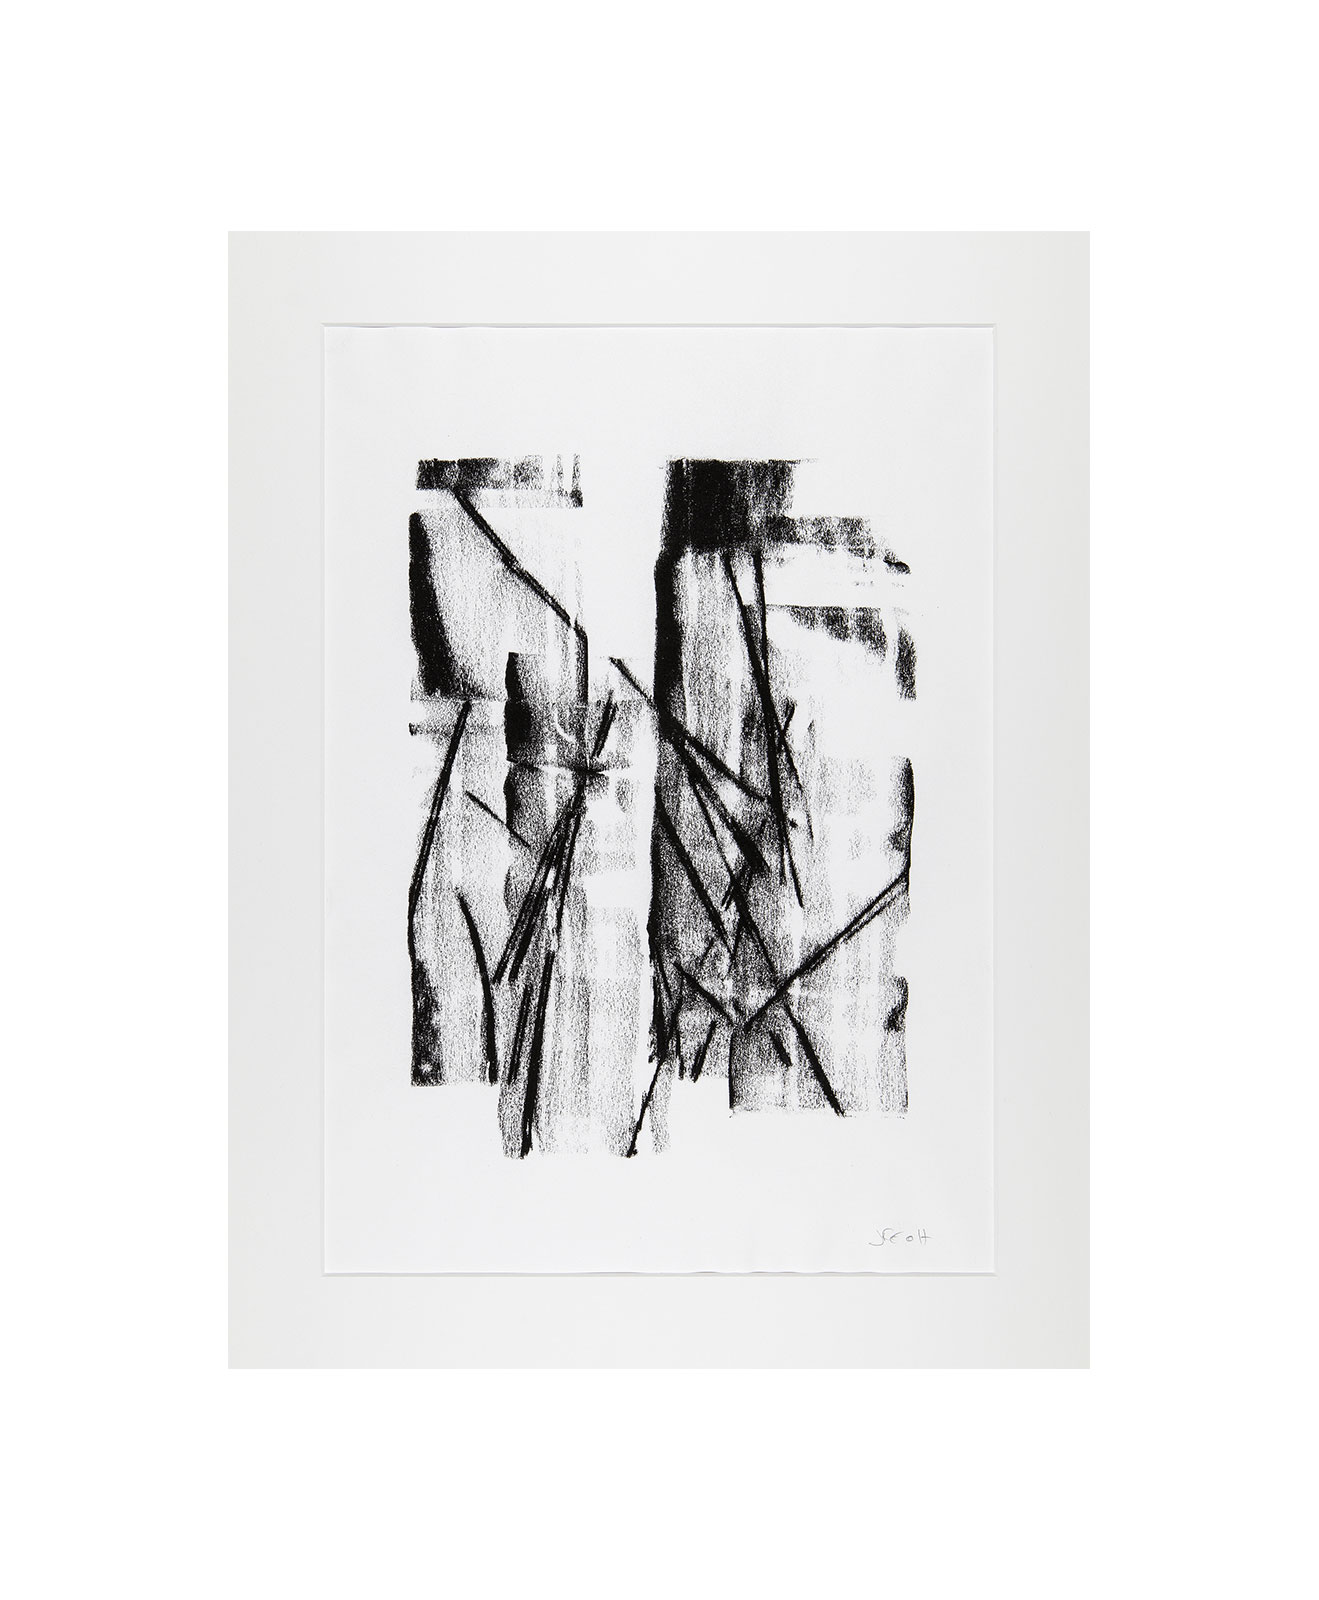 Cha 1.33, Charcoal on paper, black and white artwork, drawing, jf escande, contemporary art